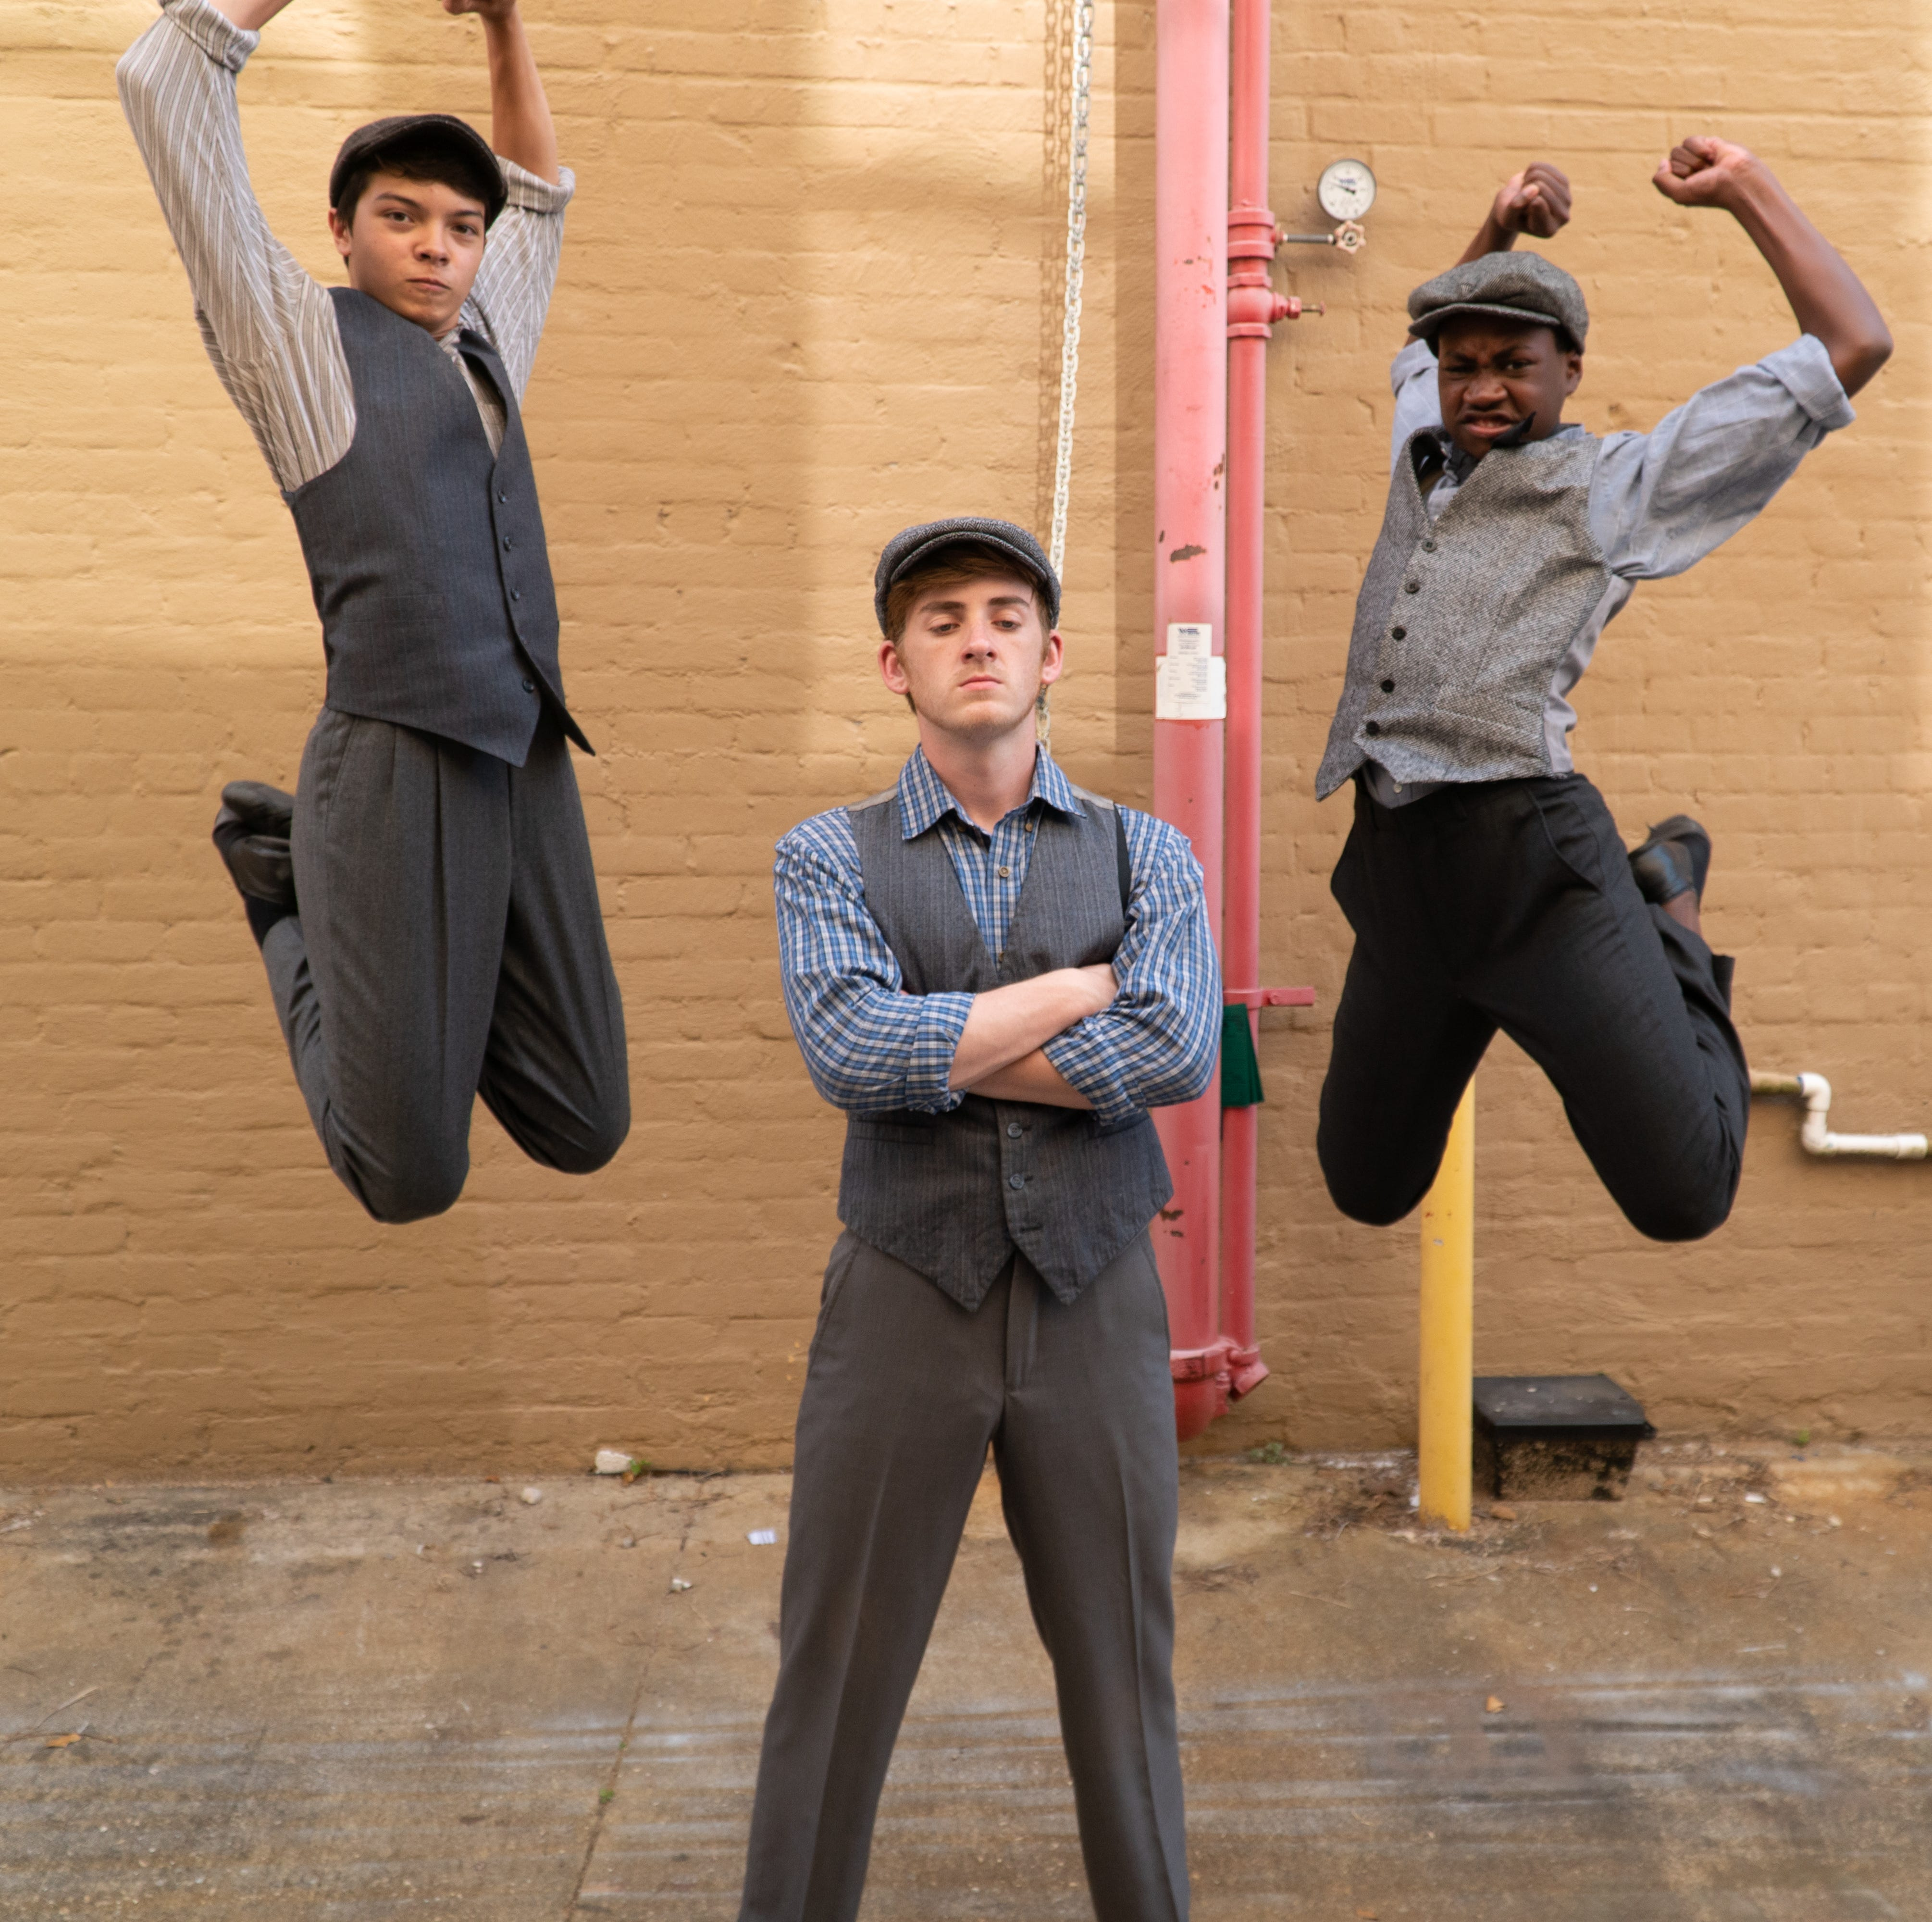 Broadway hit 'Newsies' comes to Florida Rep with 51 actors from all over SWFL